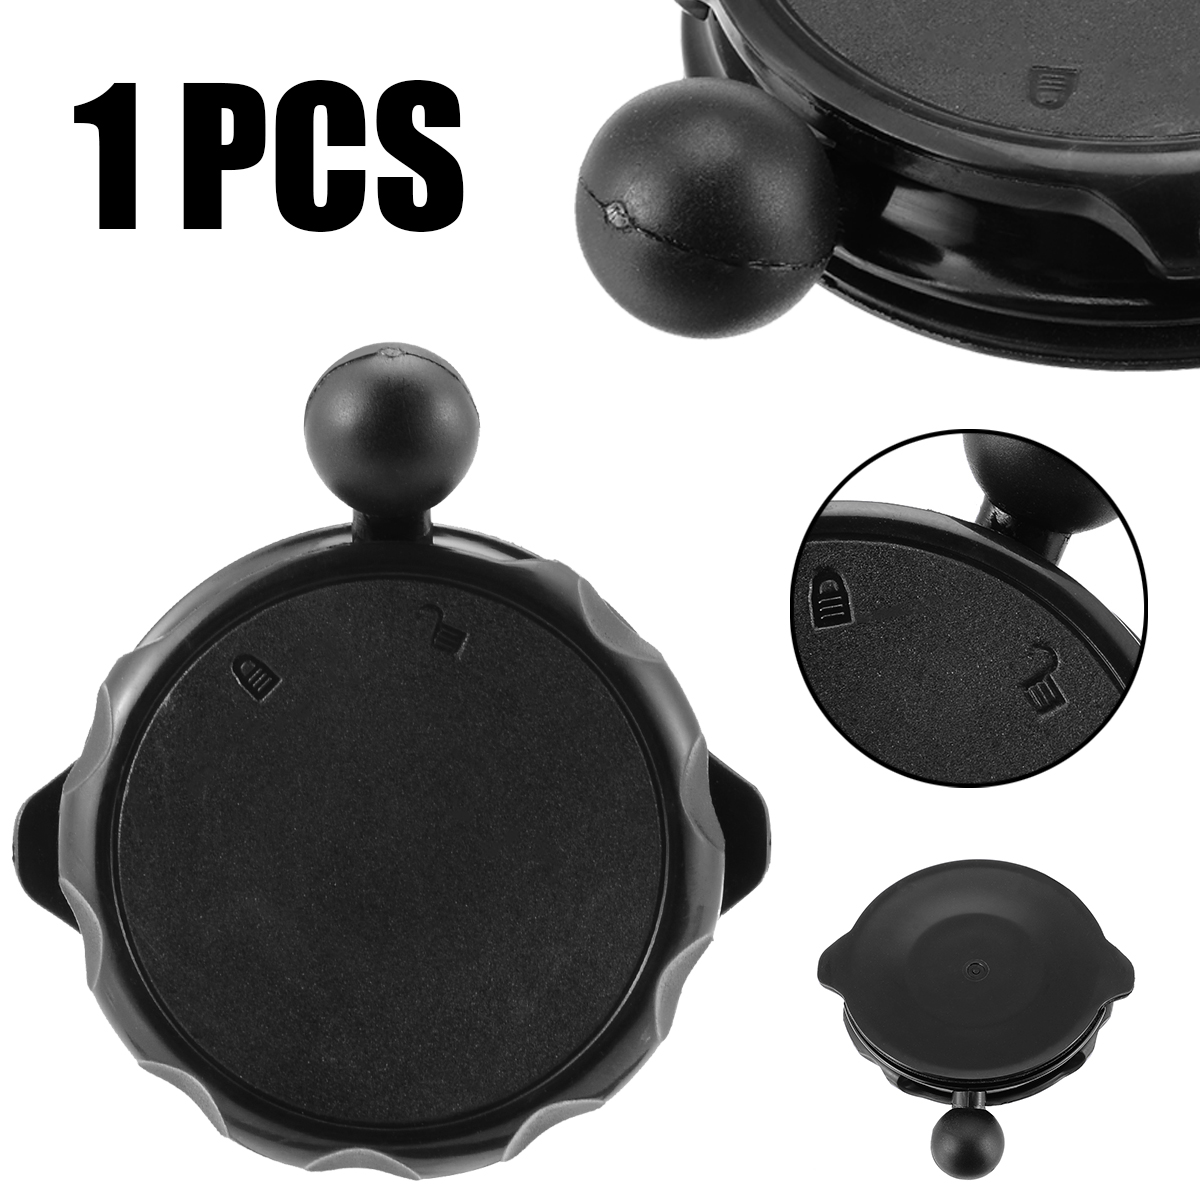 1pcs Car Windshield Holder Mount Suction Cup for TomTom Start 20 25 60 GO Live 800 825 VIA GPS Mount Support Car-Styling